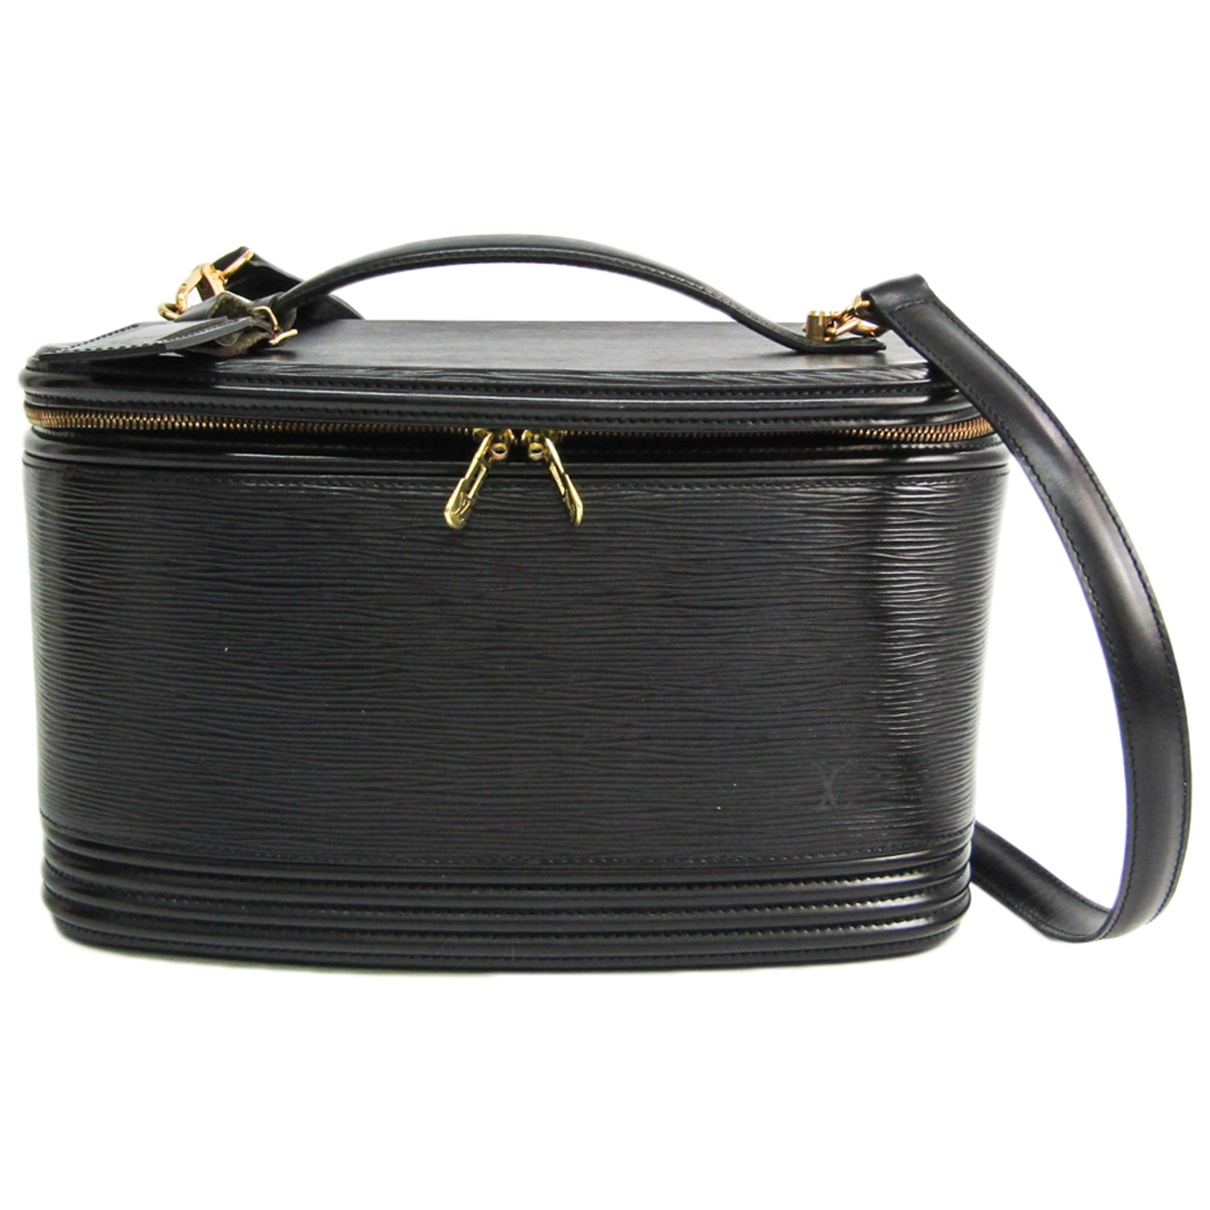 Louis Vuitton Nice Black Leather Travel bag for Women \N